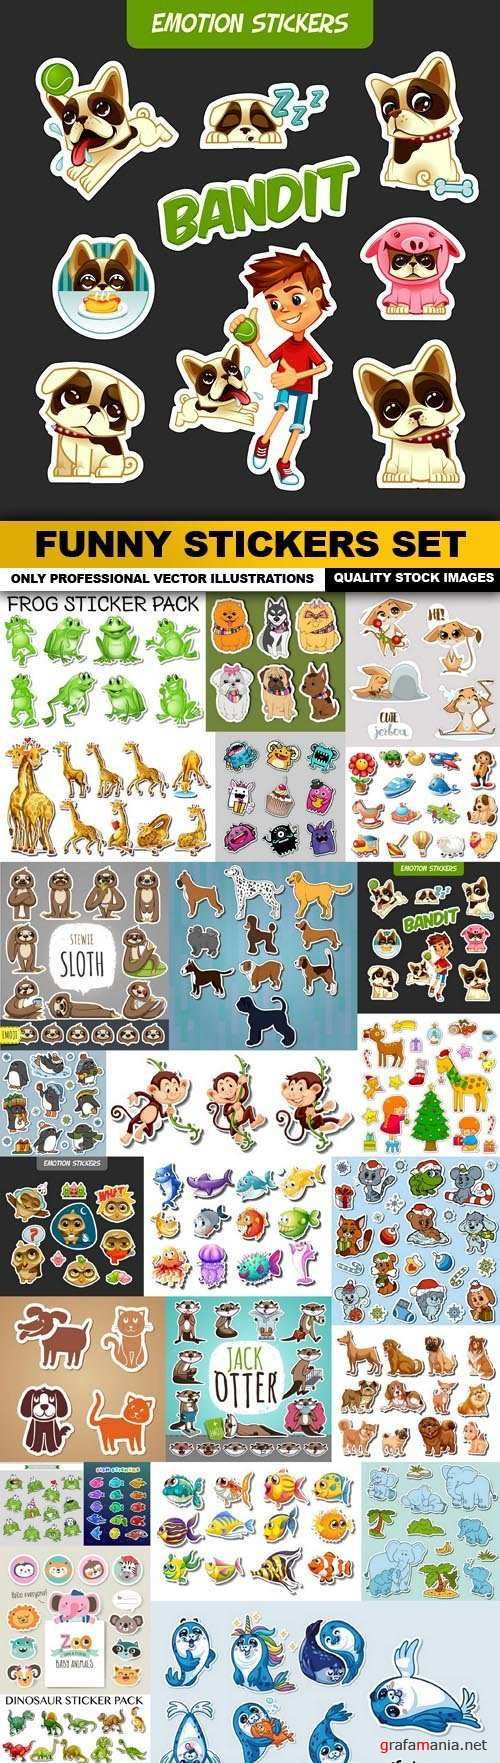 Funny Stickers Set - 25 Vector